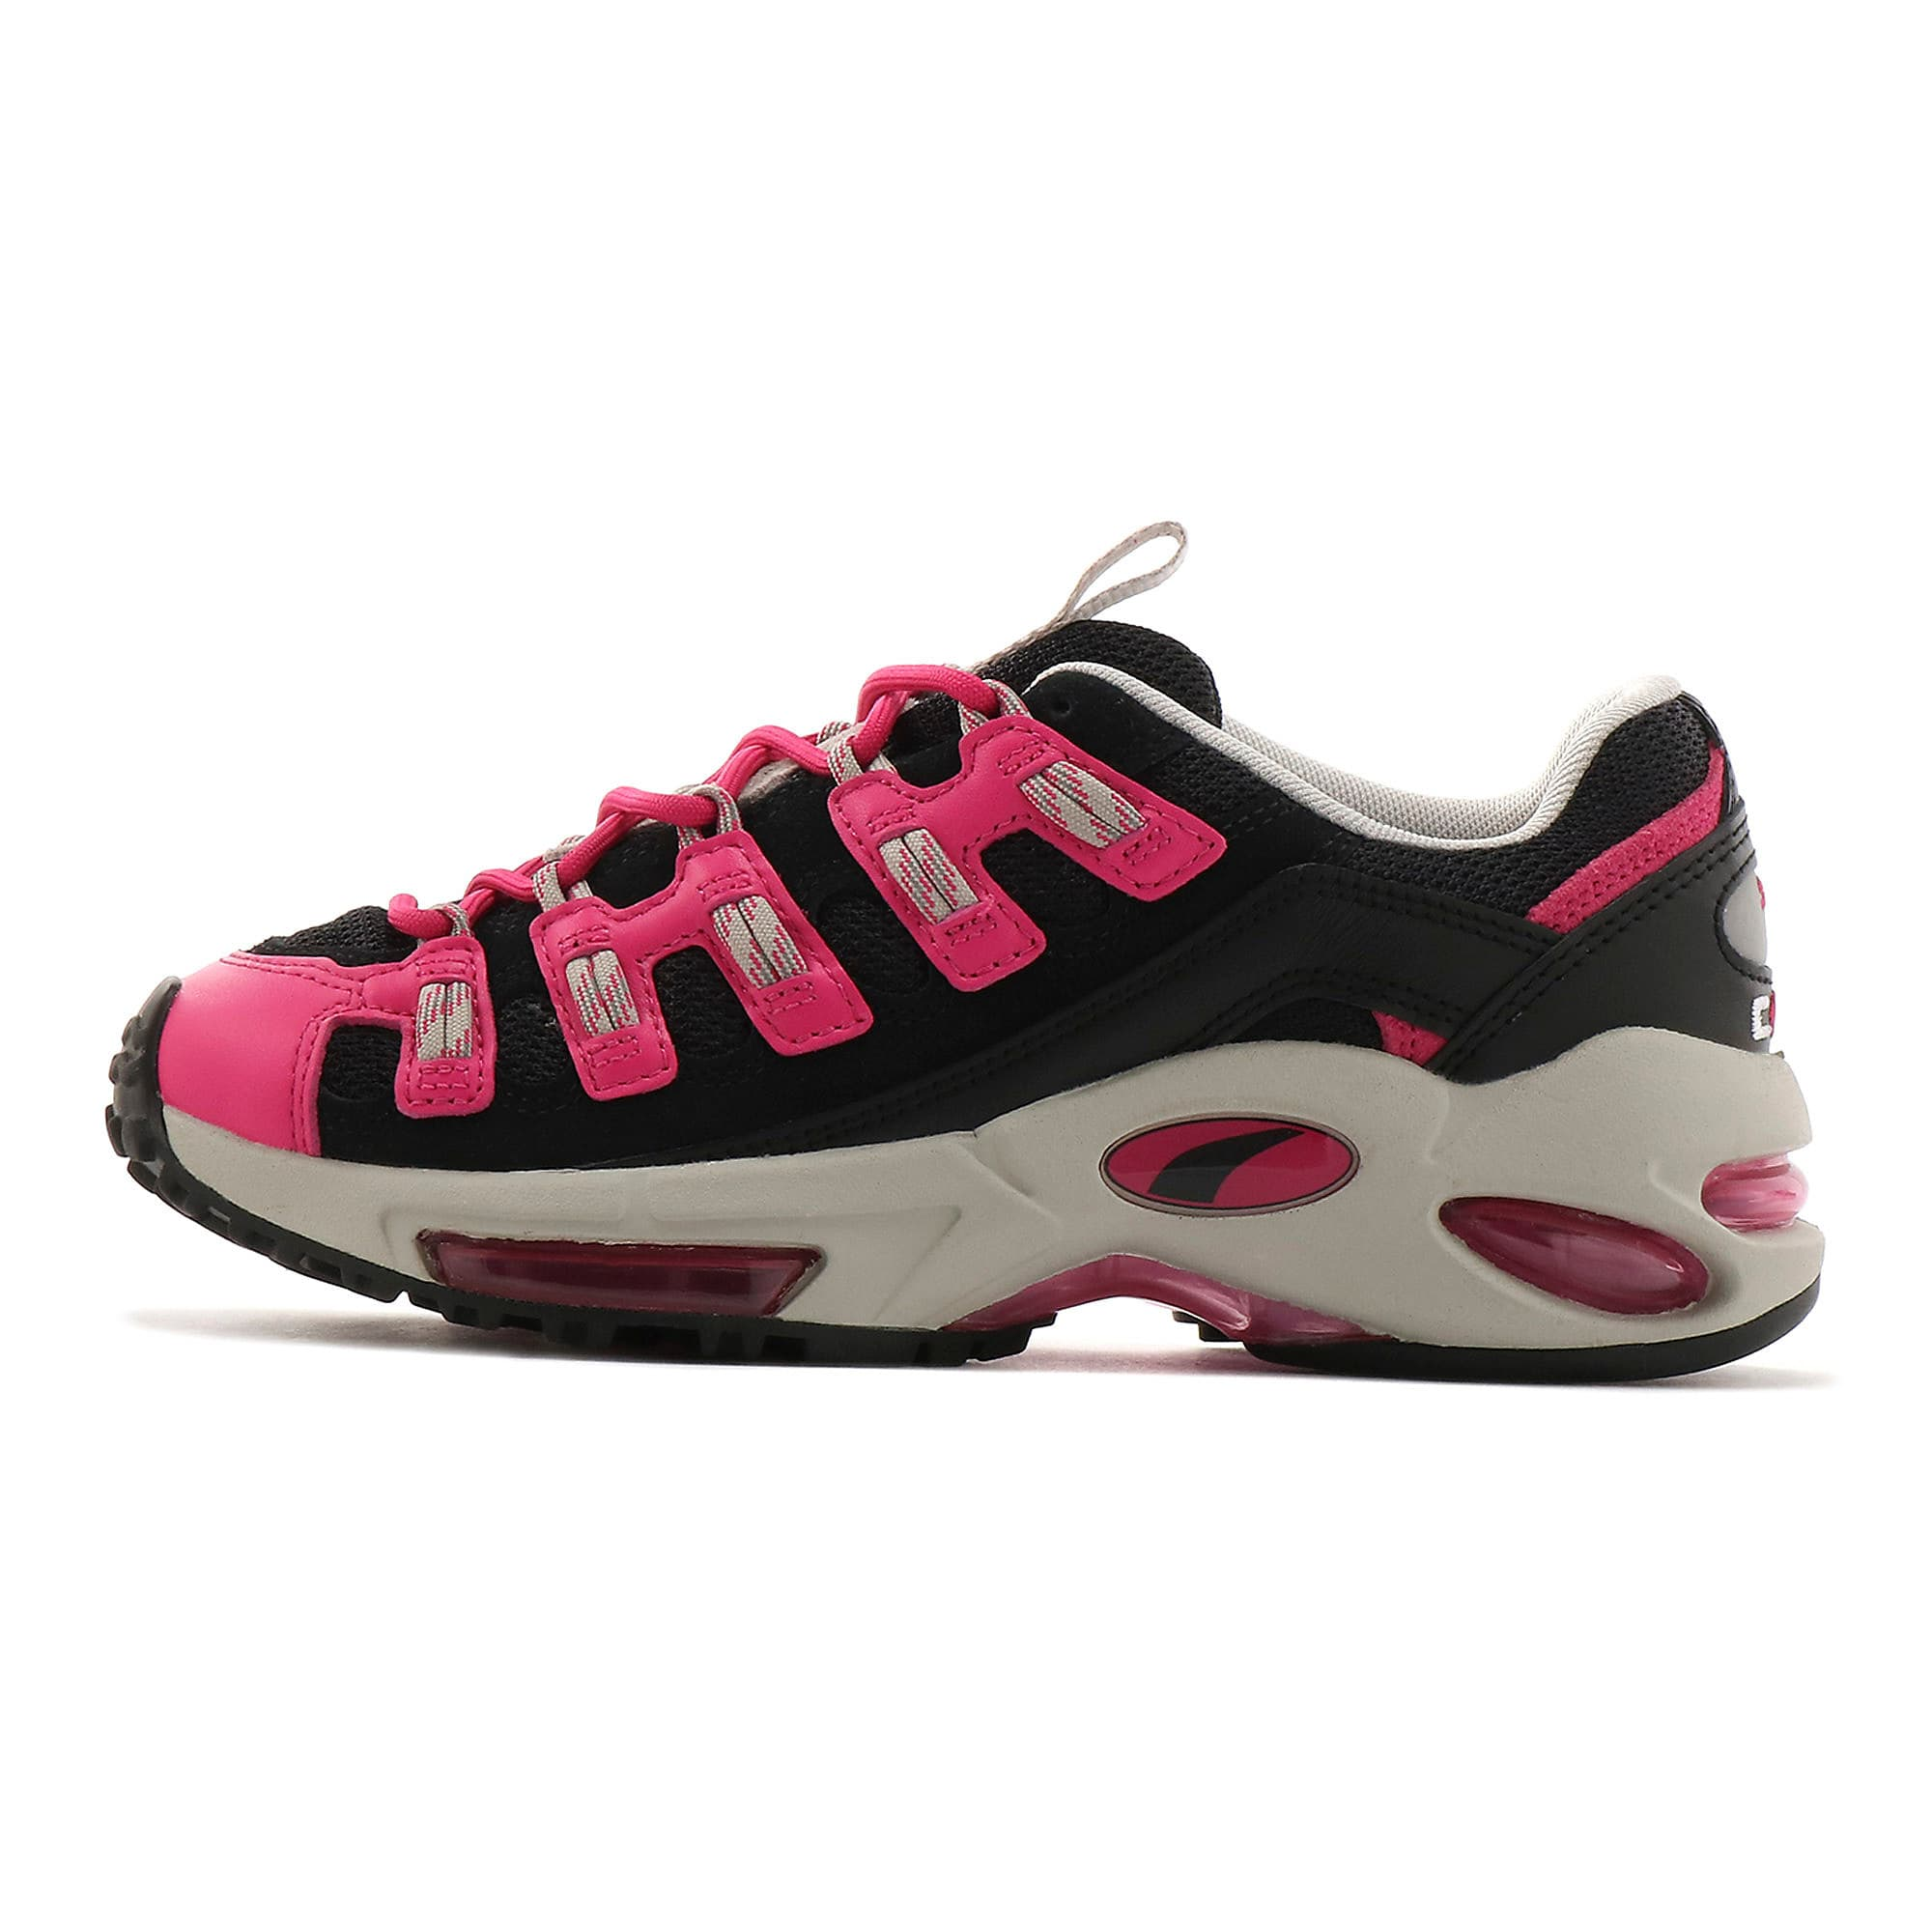 Thumbnail 1 of CELL ENDURA スニーカー, Puma Black-Fuchsia Purple, medium-JPN